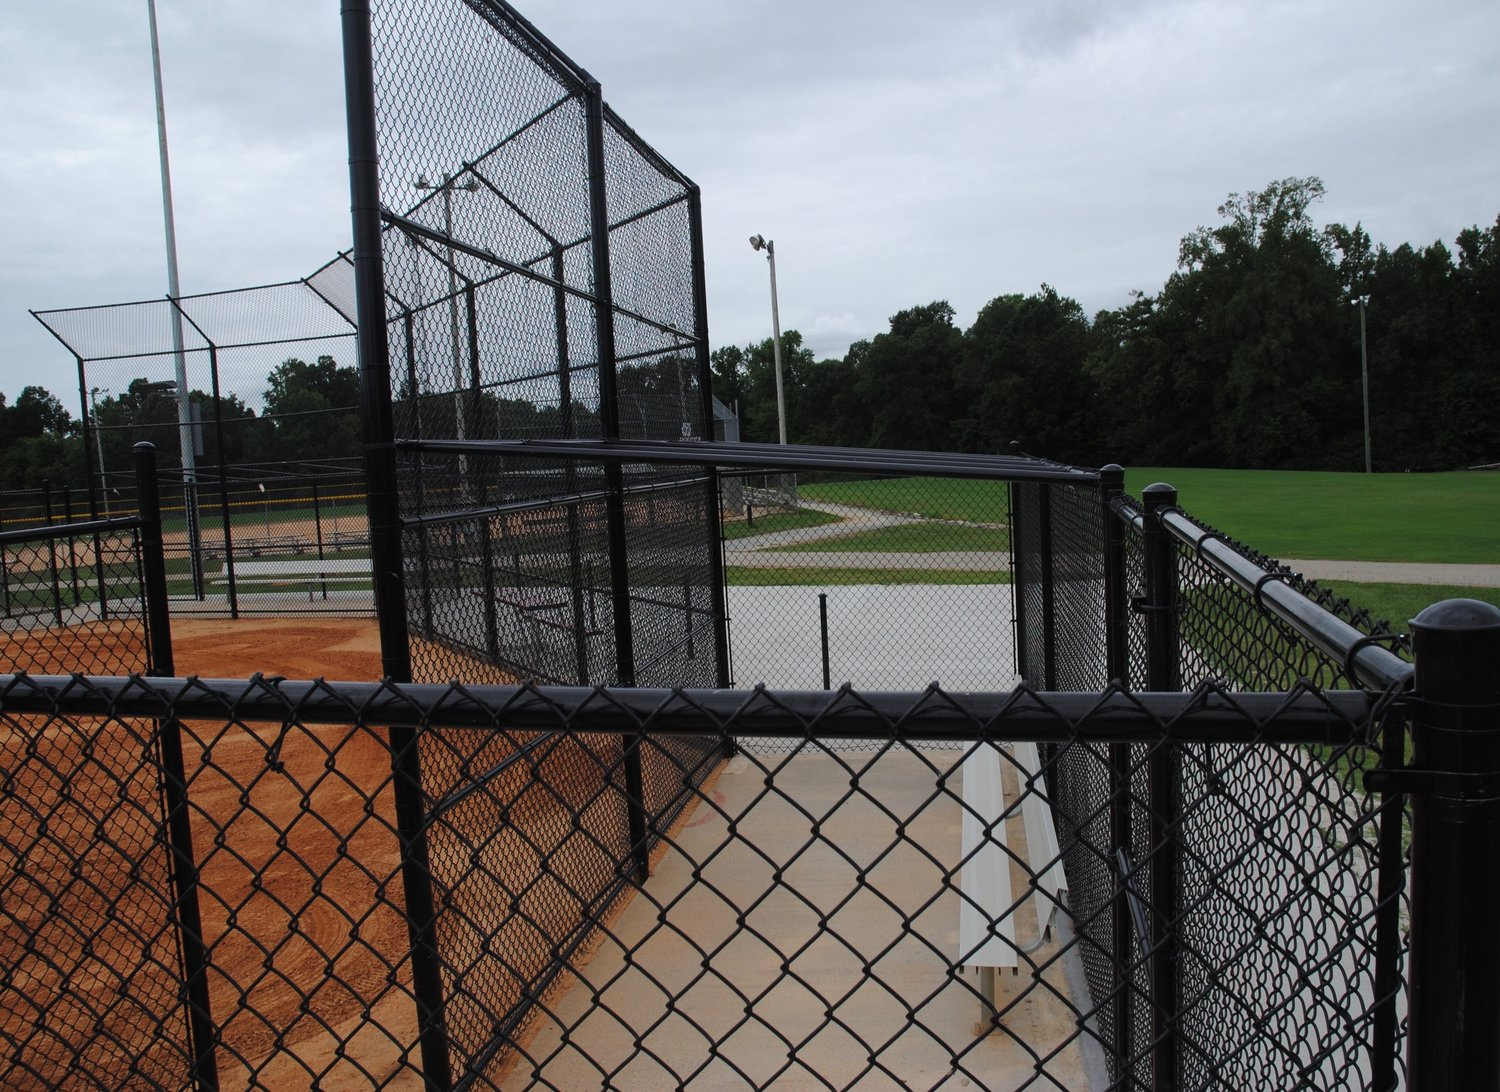 The Town of Erwin Parks and Rec decided this week to suspend all of its fall sports programs in response to the ongoing COVID-19 pandemic. Batting cages and fields at Al Woodall Park will be open for free play.